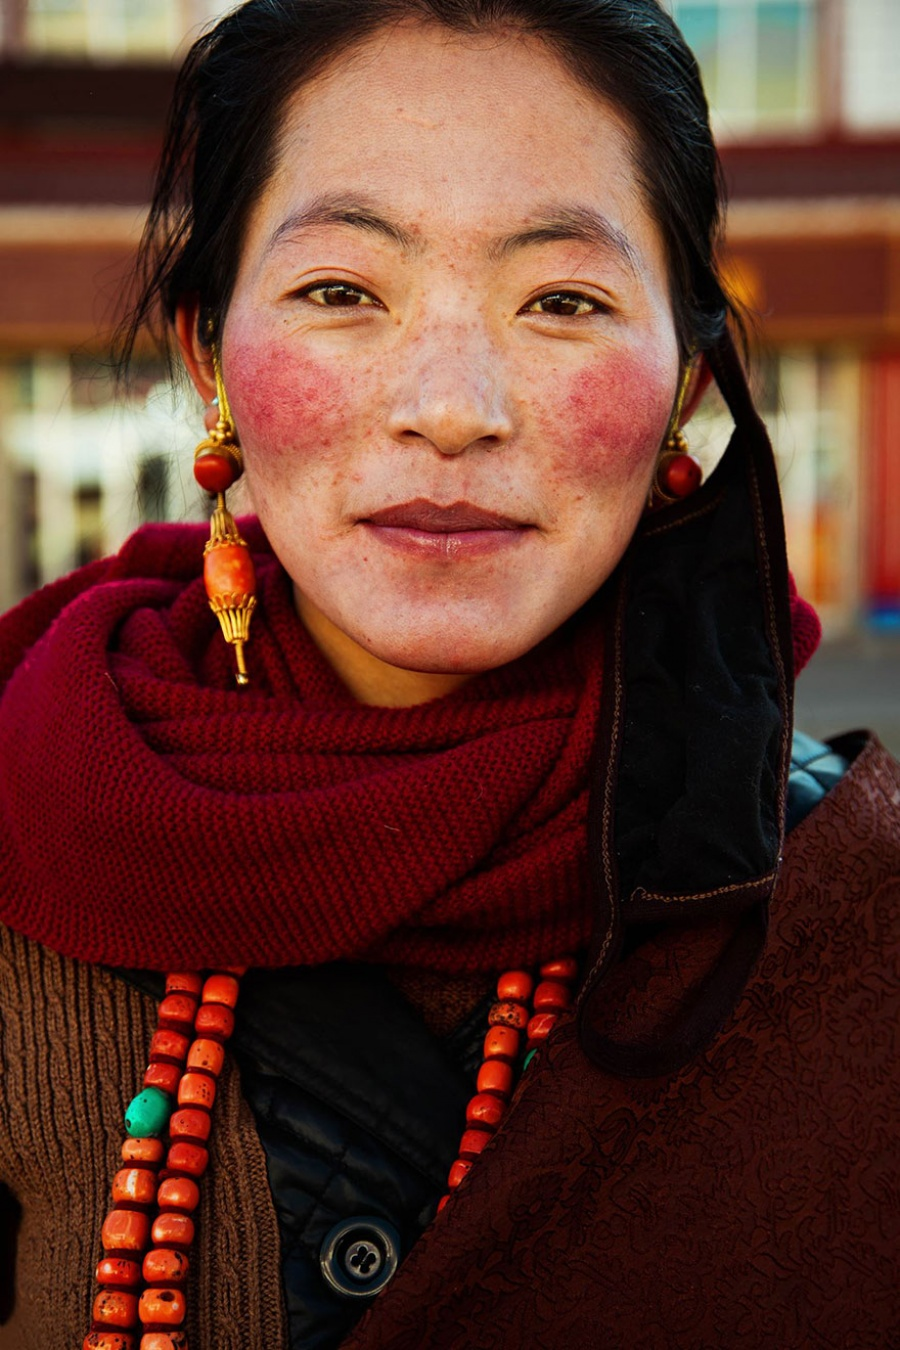 13376810-R3L8T8D-900-different-countries-women-portrait-photography-michaela-noroc-15-tibet-china-1